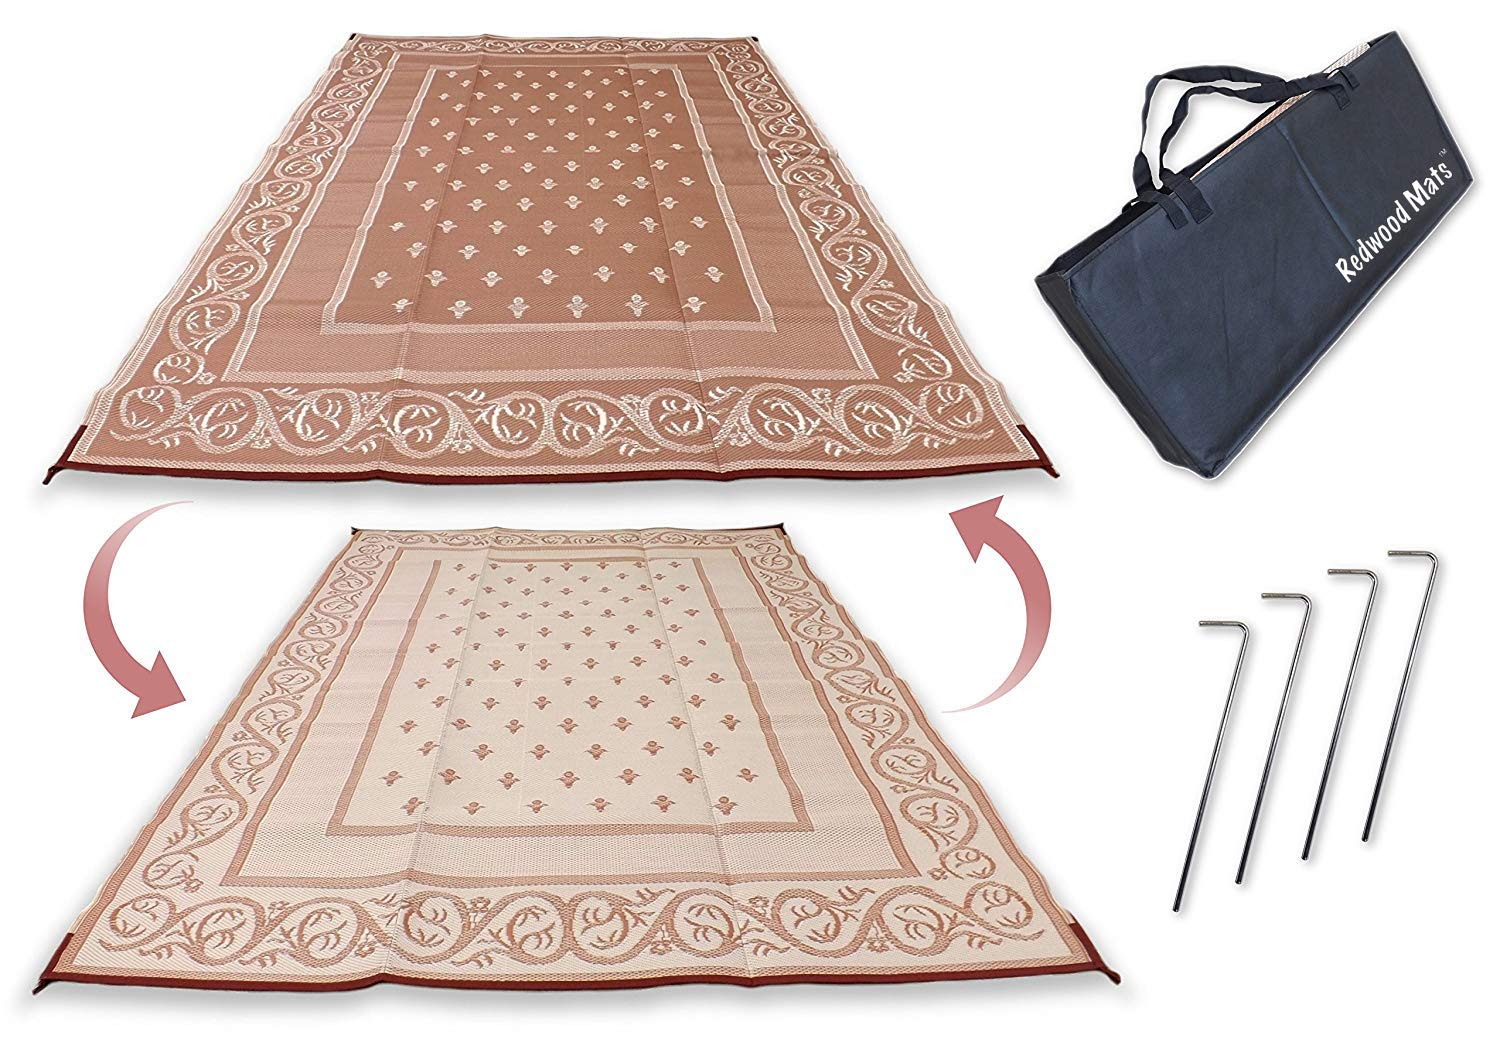 Redwood Mats Patio Mat 9' X 12' Beige Reversible Outdoor Rug Camping Rv Mat Indoor (With Ground Stakes & Carry Bag)